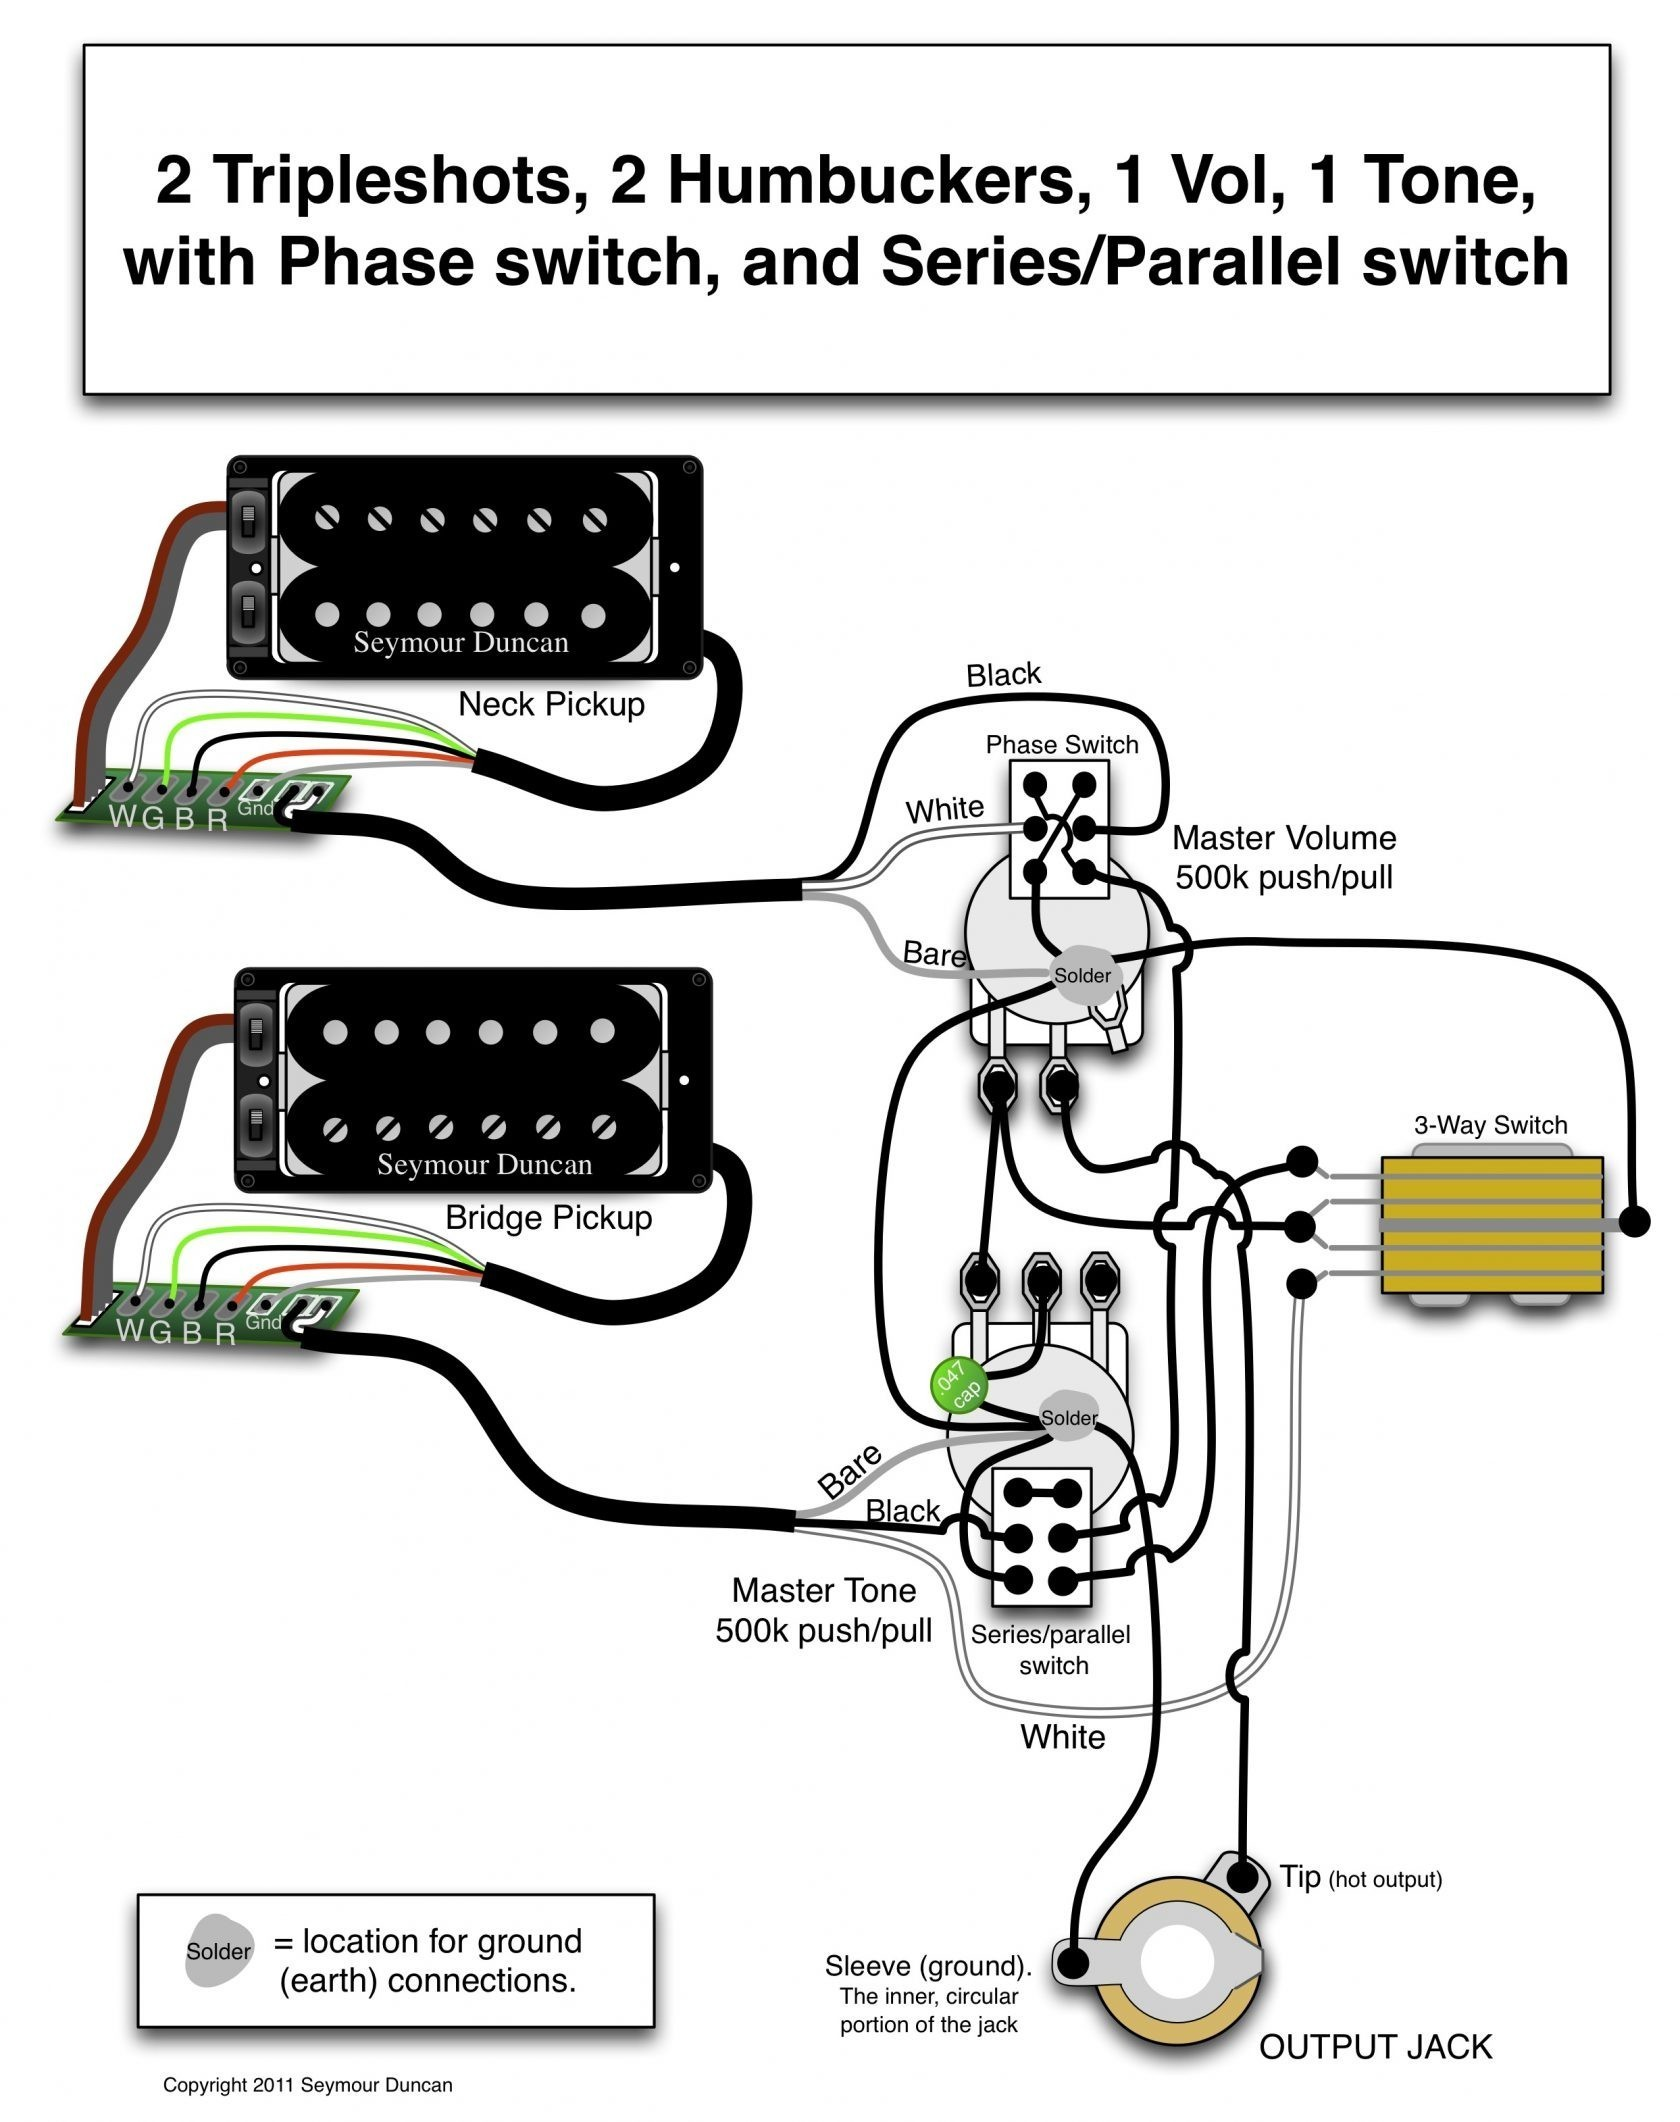 Gibson Futura Wiring Schematic Trusted Diagrams With Ripper Bass Diagram Further Es 335 Humbuckers Flying V Data Base Mcquay Schematics